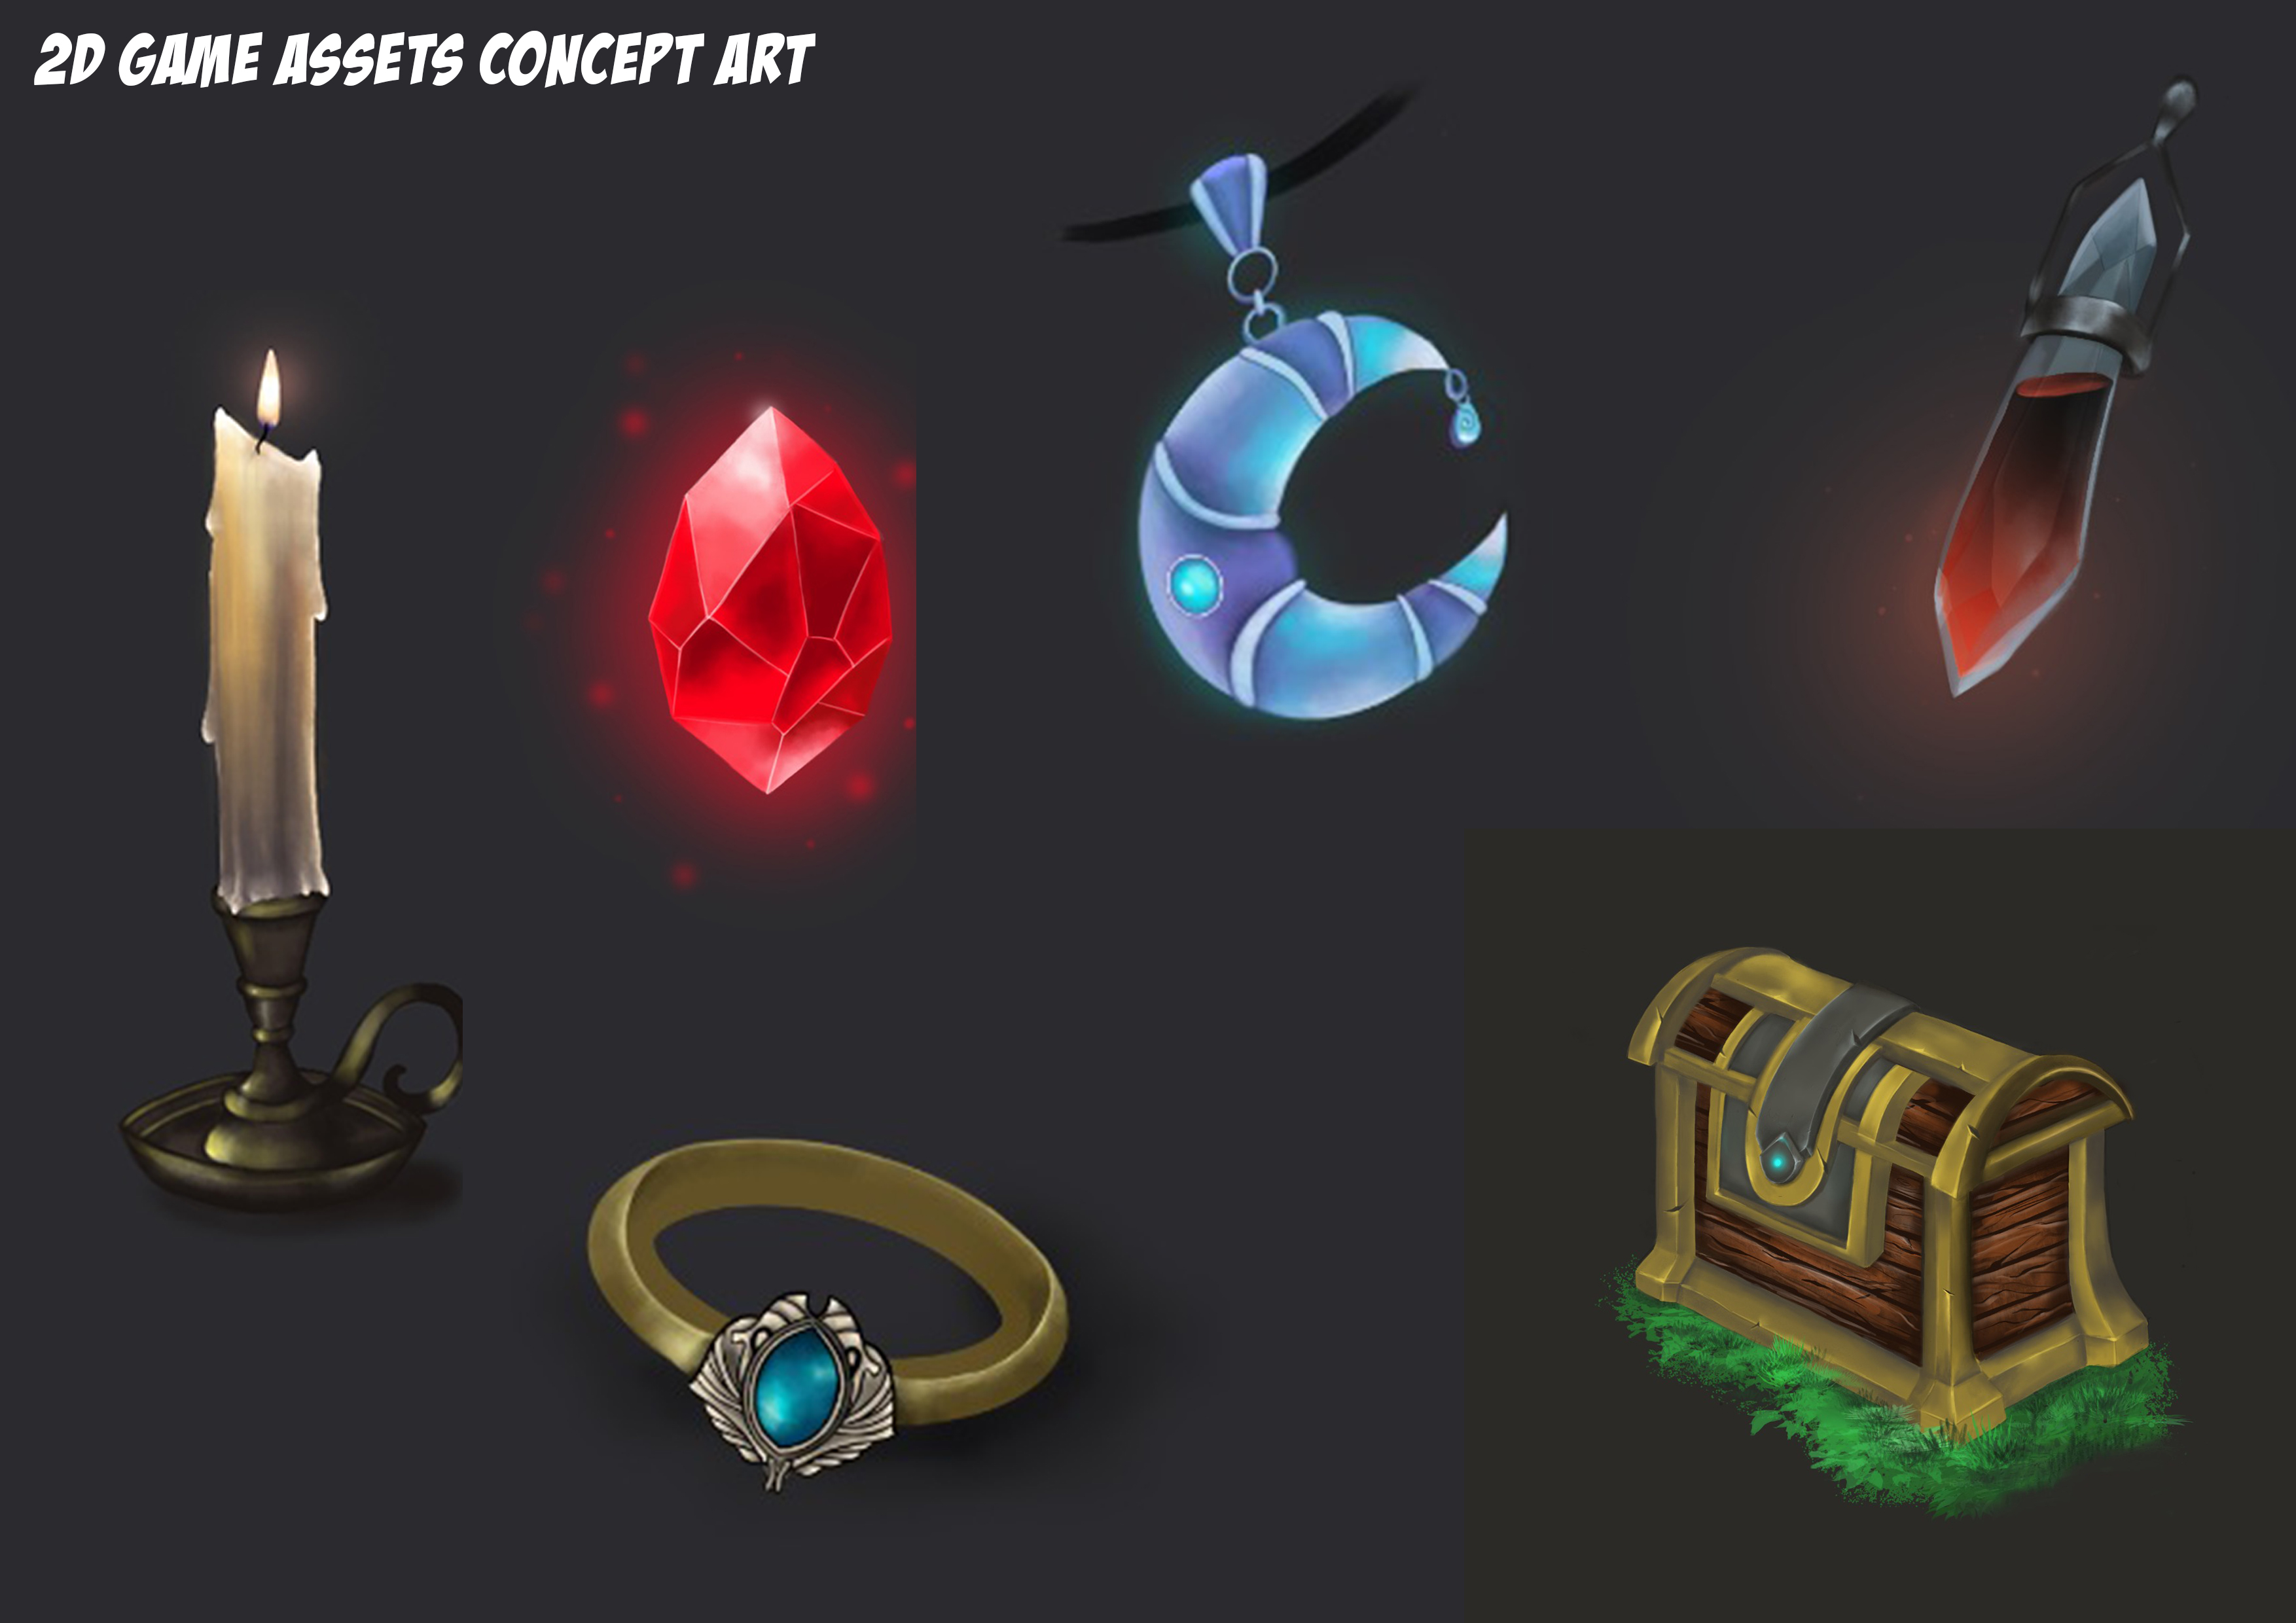 I will make character,  environment,  game assets concept art for you